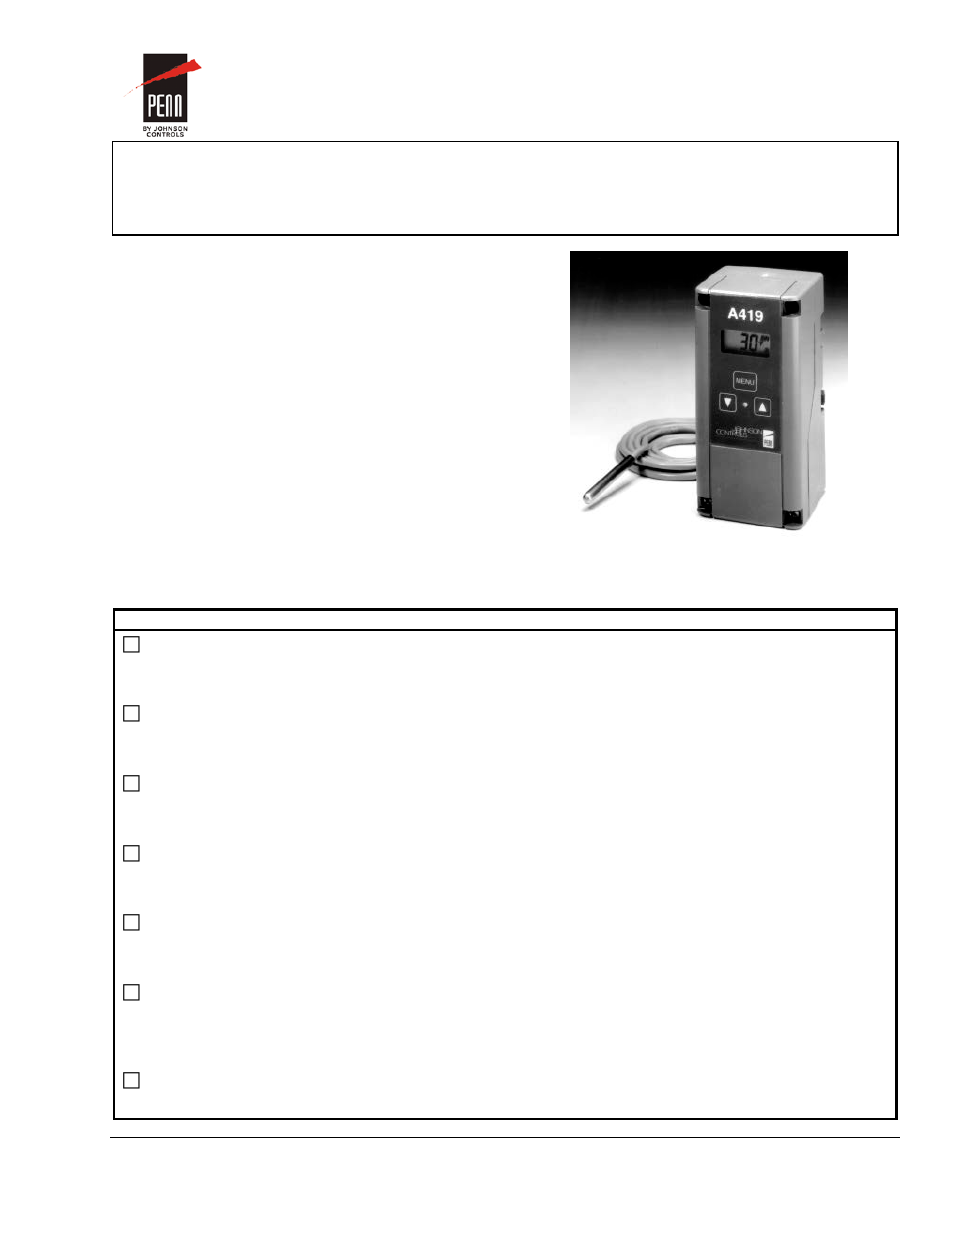 Johnson Controls A419 Wiring Diagram